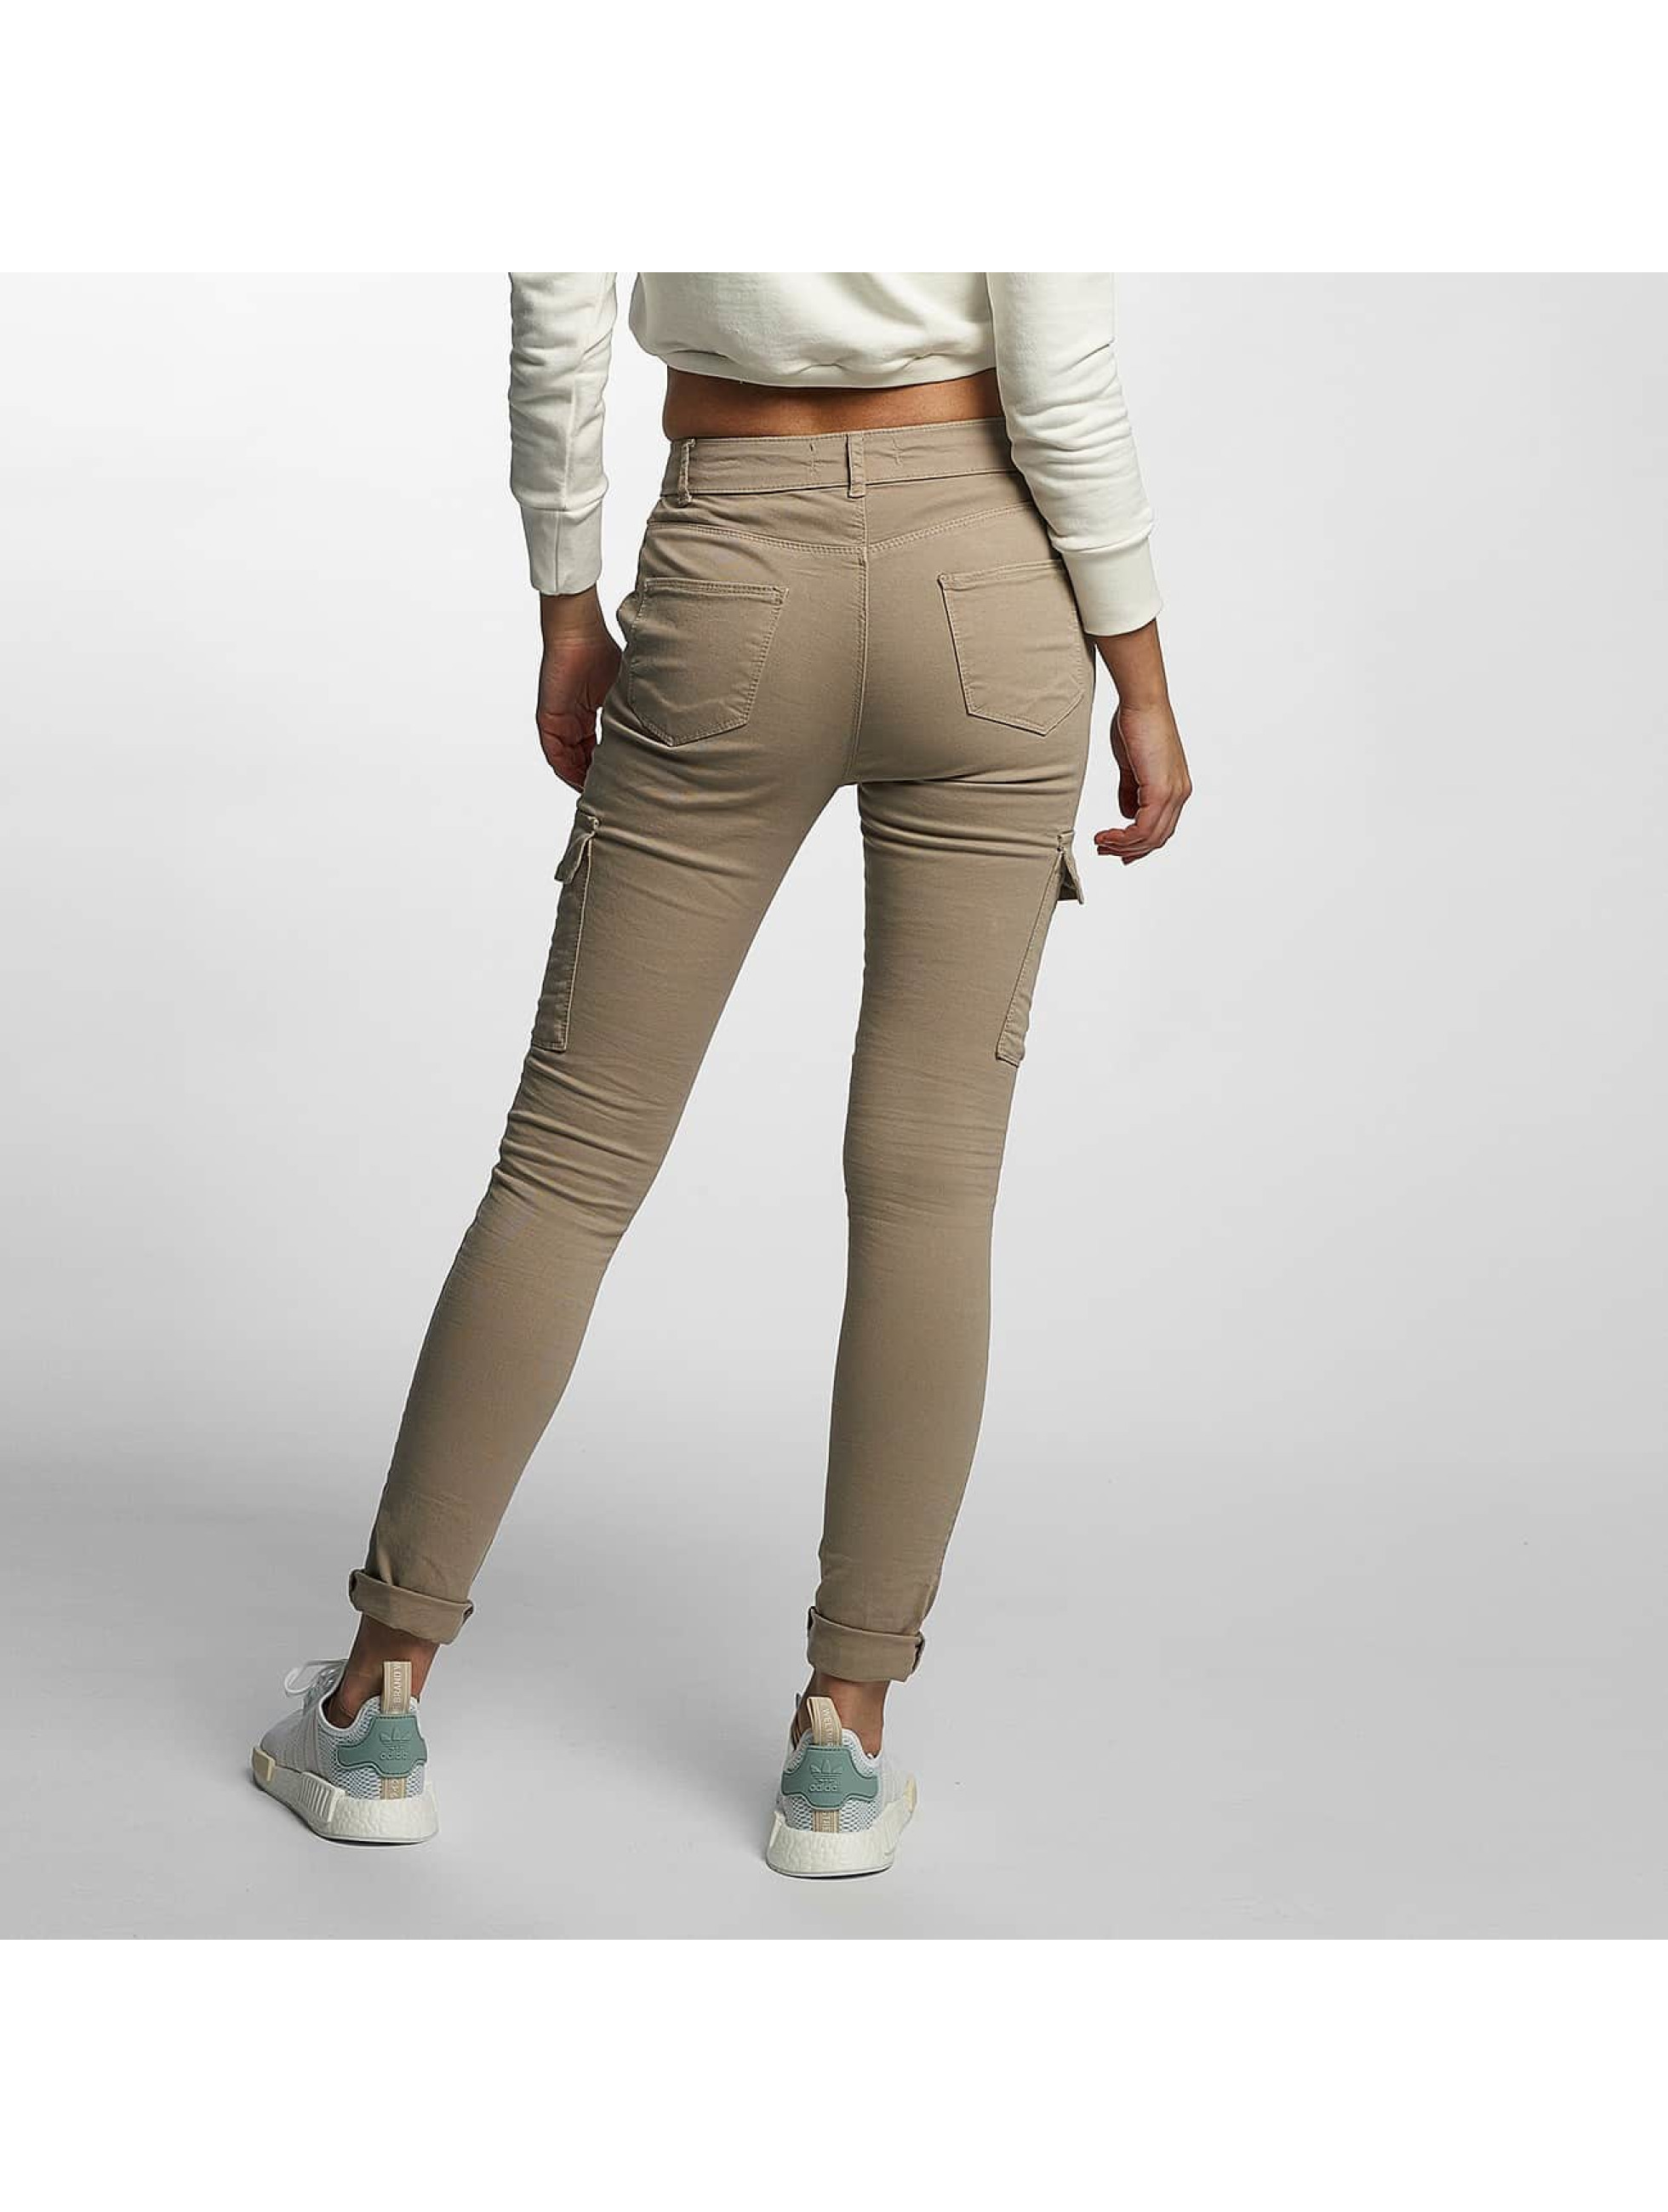 Buy New Womens Tan/Beige Jeans at Macy's. Shop Online for the Latest Designer Tan/Beige Jeans for Women at palmmetrf1.ga FREE SHIPPING AVAILABLE!